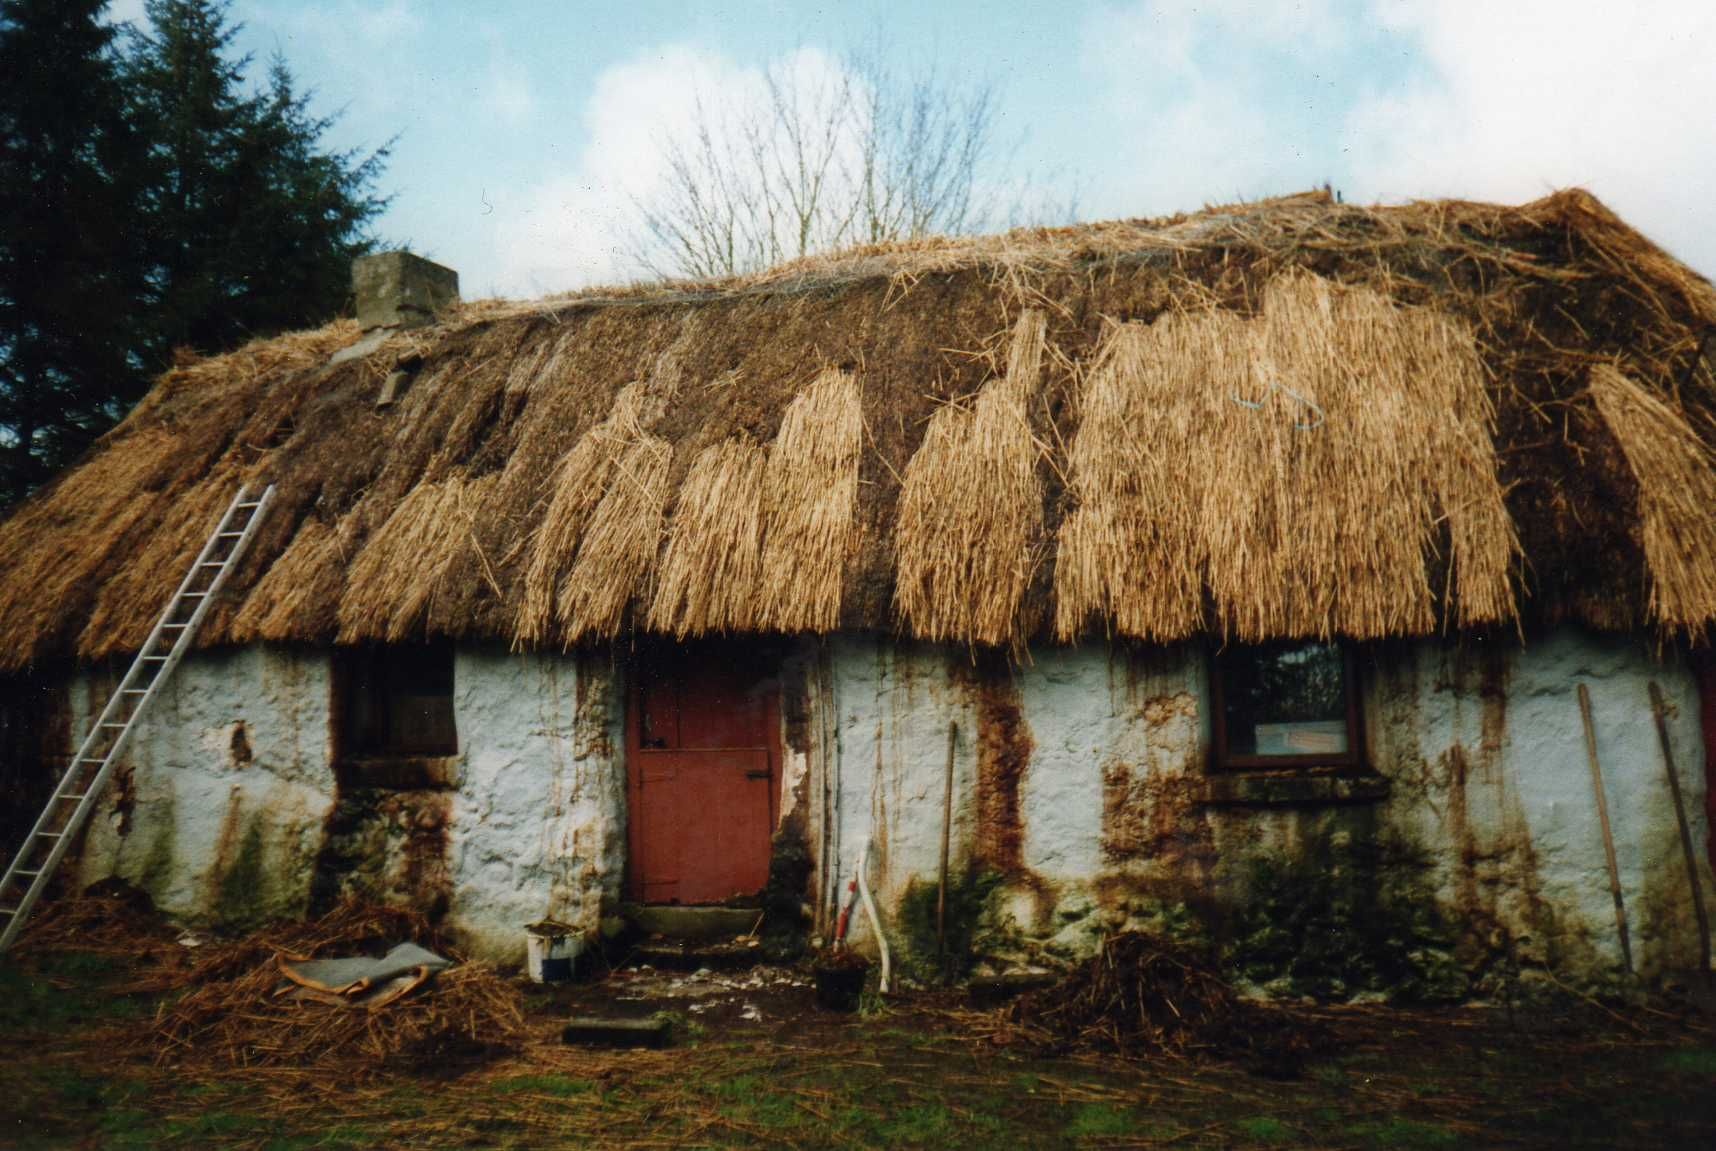 300yearold thatched building, Rathvilly, County Carlow